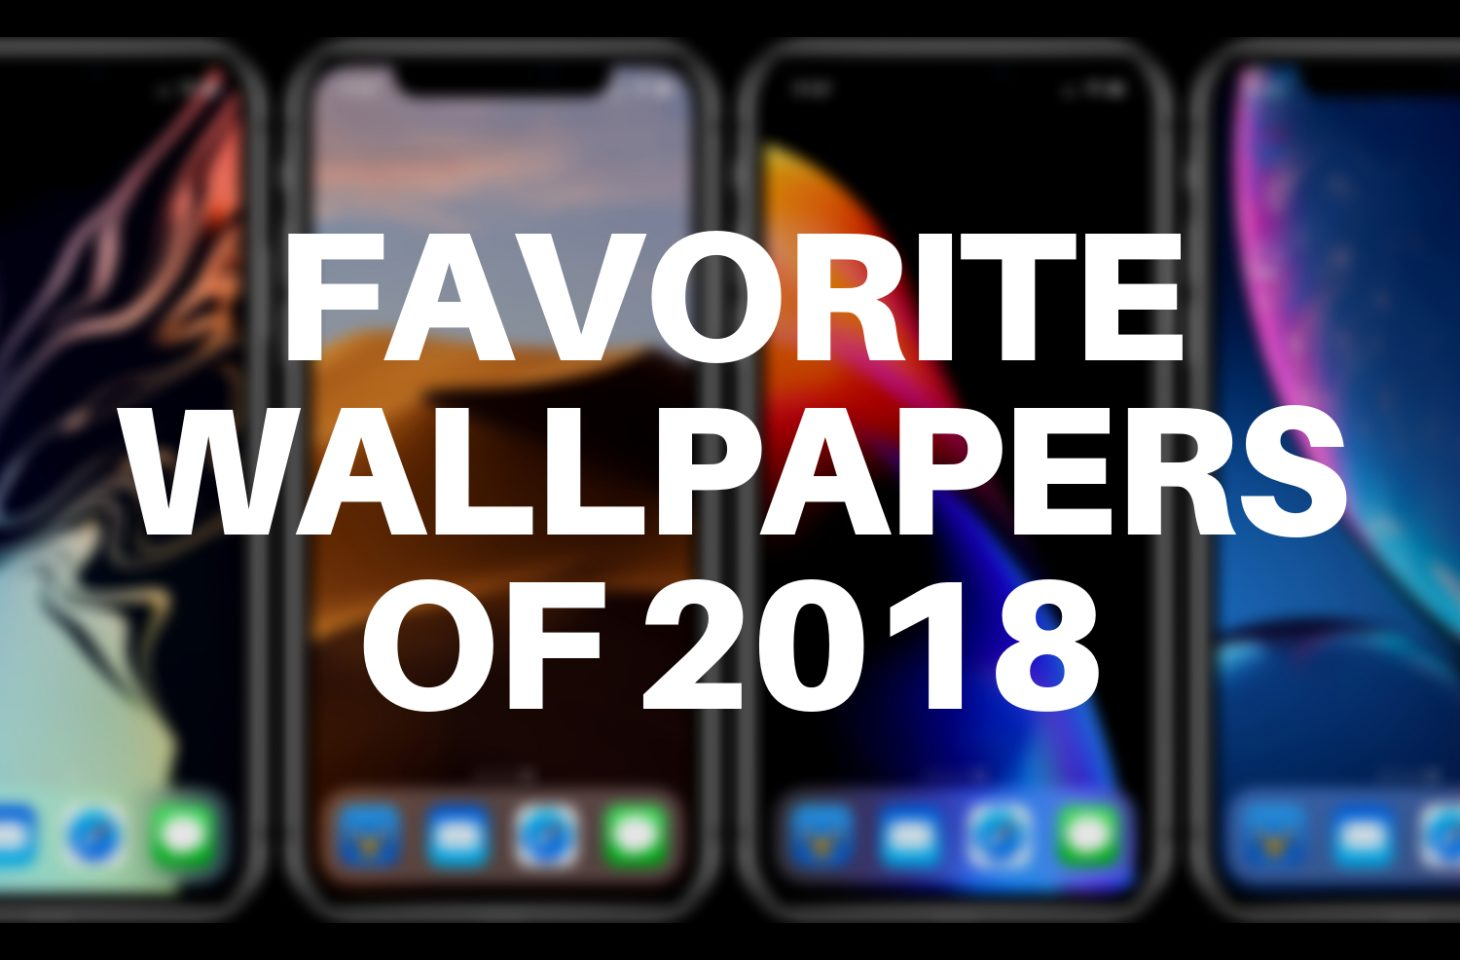 Favorite wallpapers of 2018